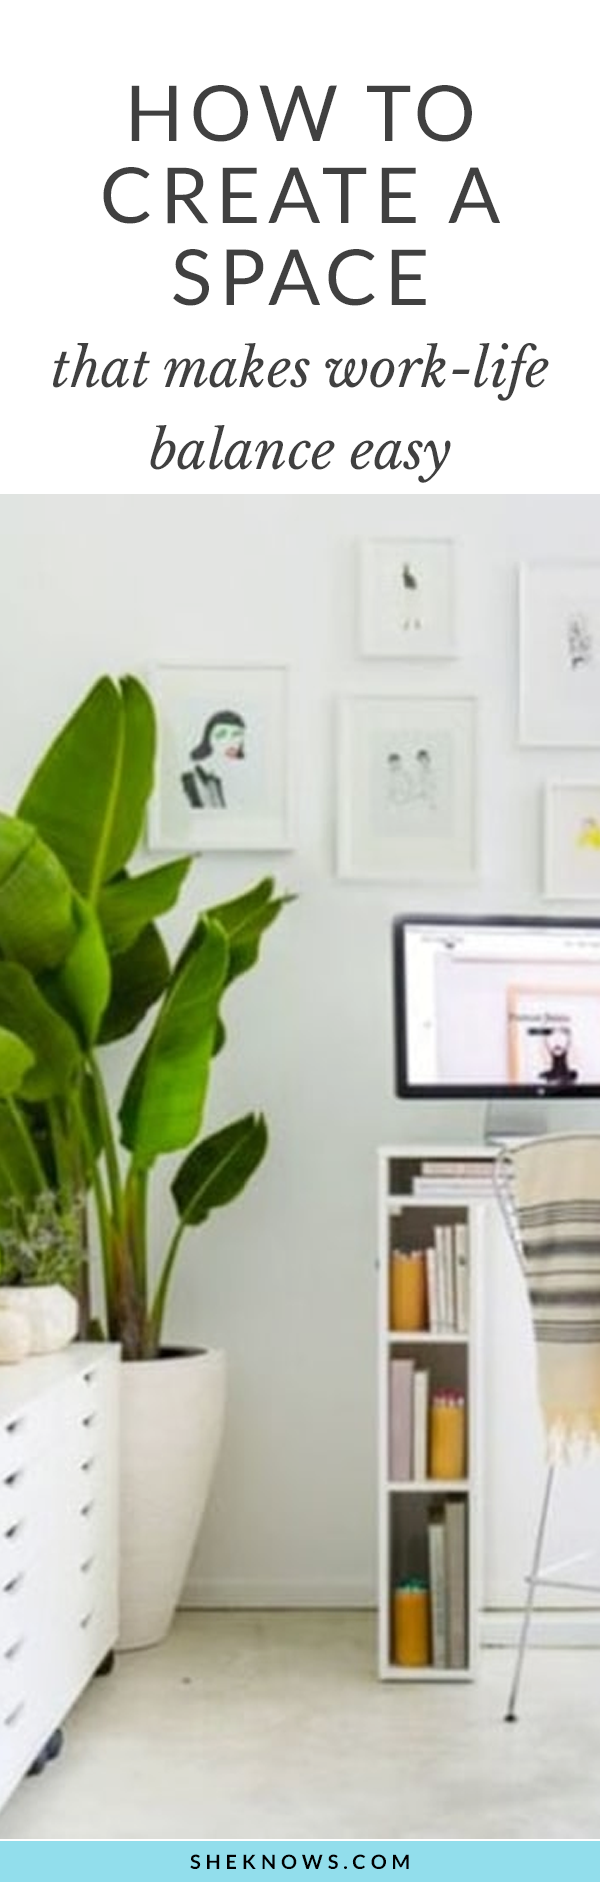 How to Create a Space That Makes Work-Life Balance Easy